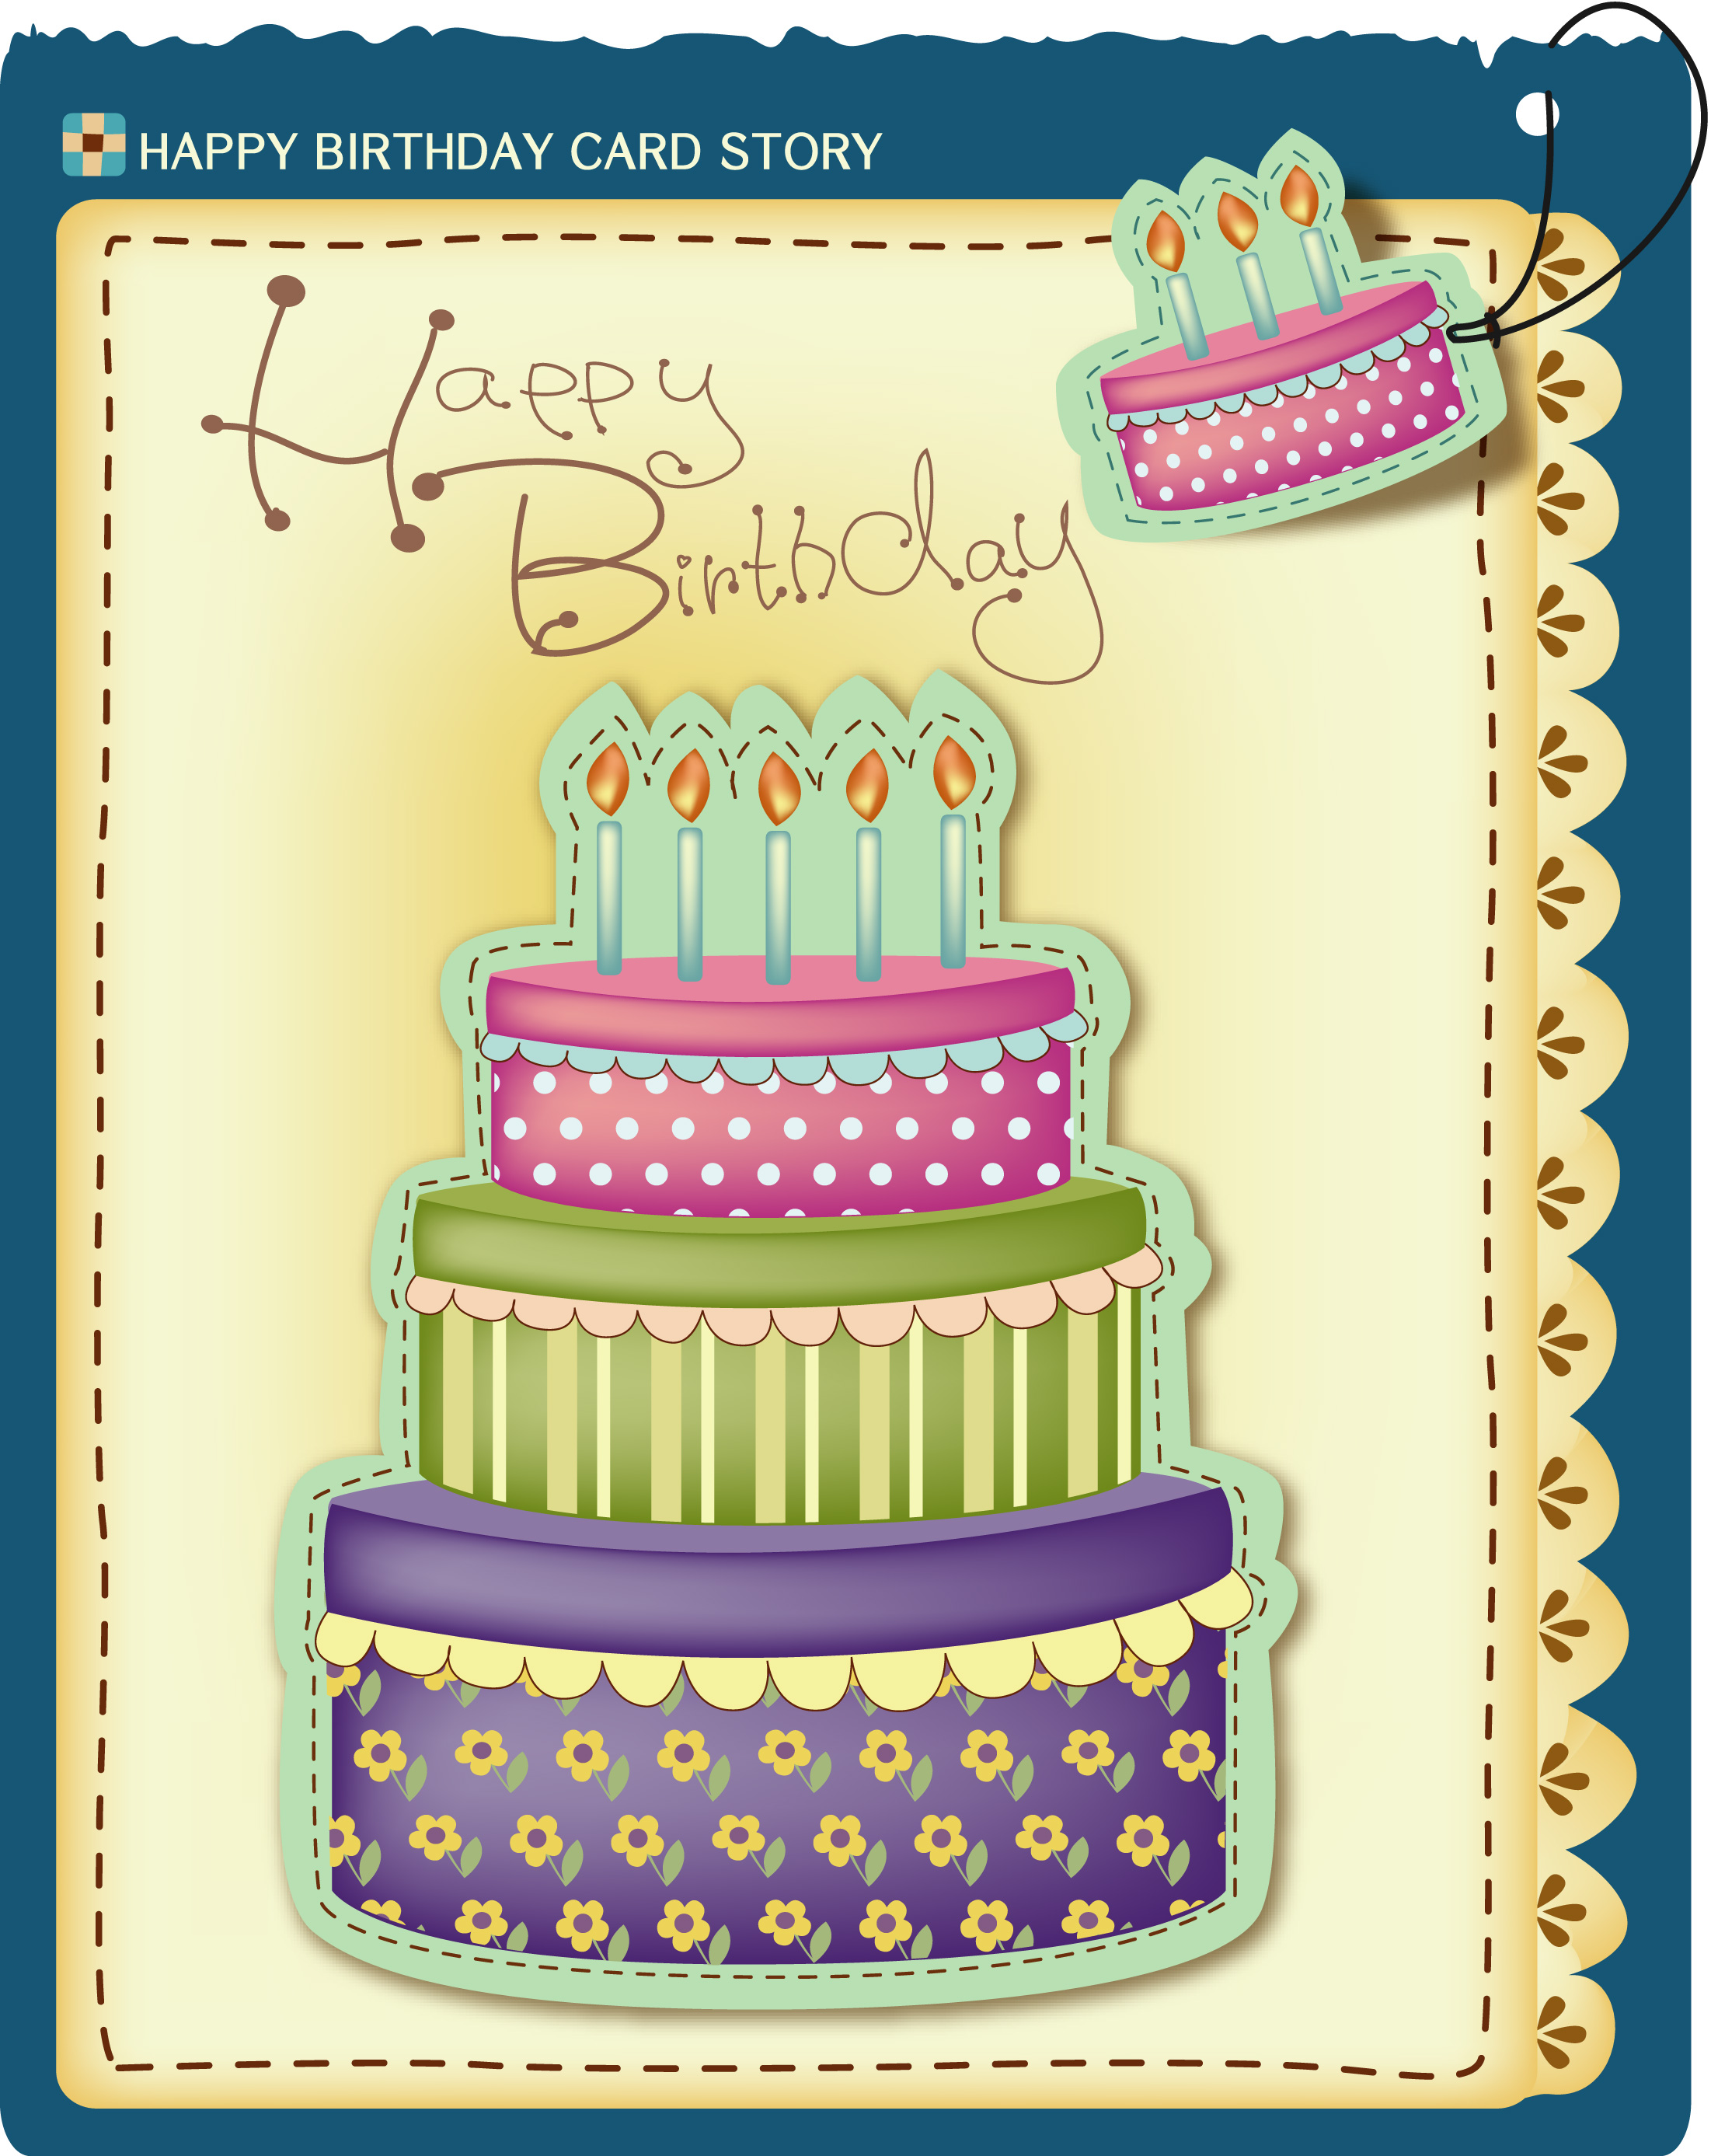 Happy Birthday Card Designs Free